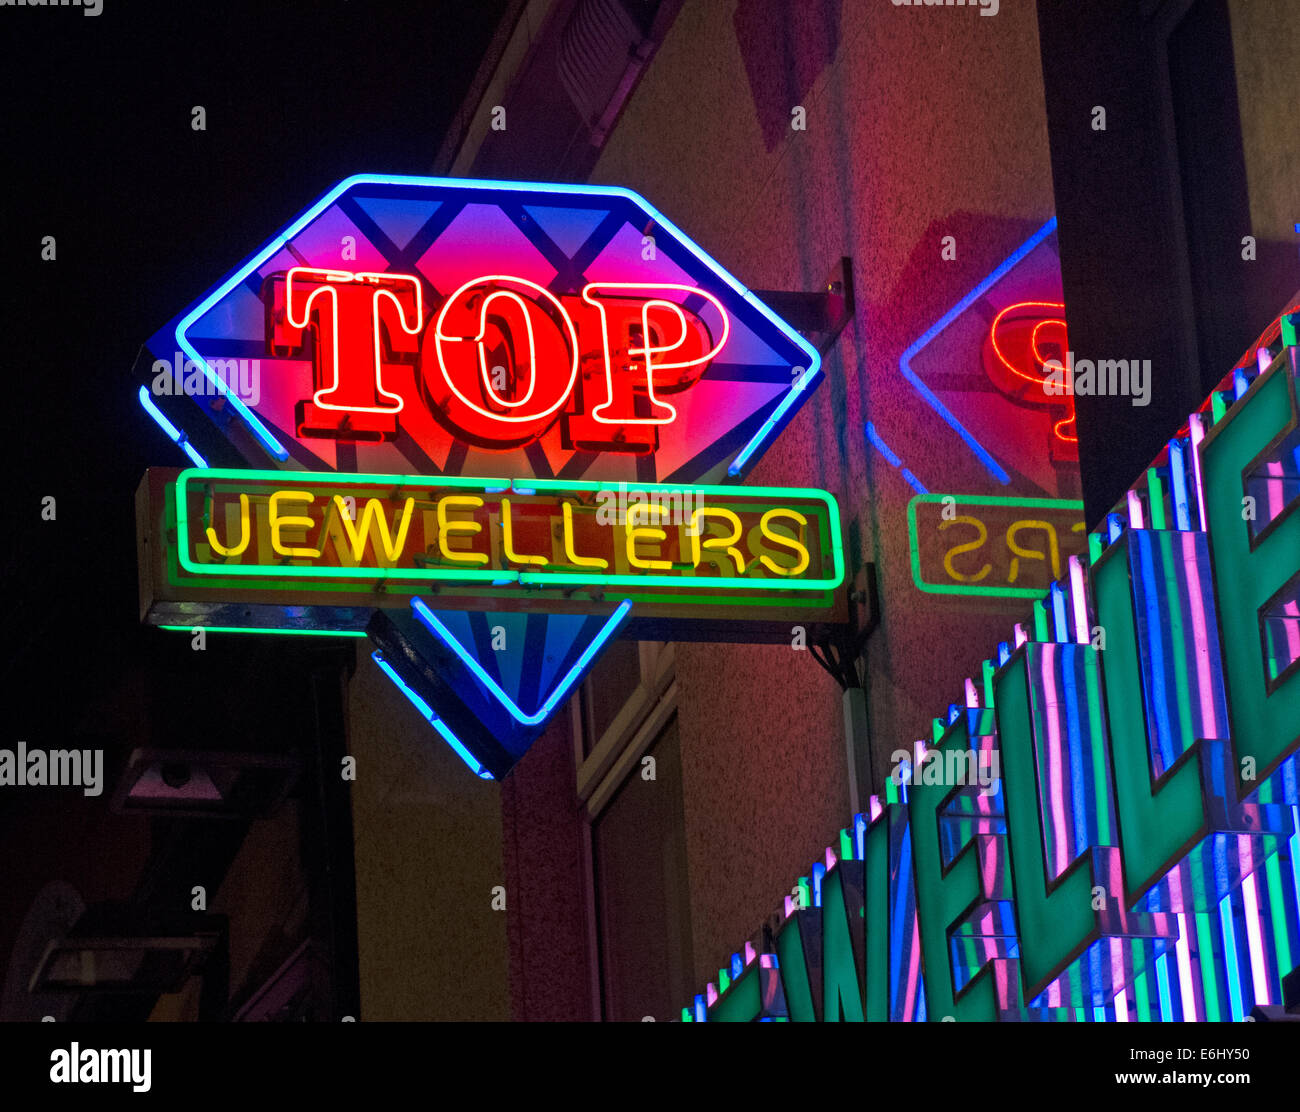 Top Indian Jewelers on the Rusholme Curry Mile, Manchester City Centre, England at Night - Stock Image